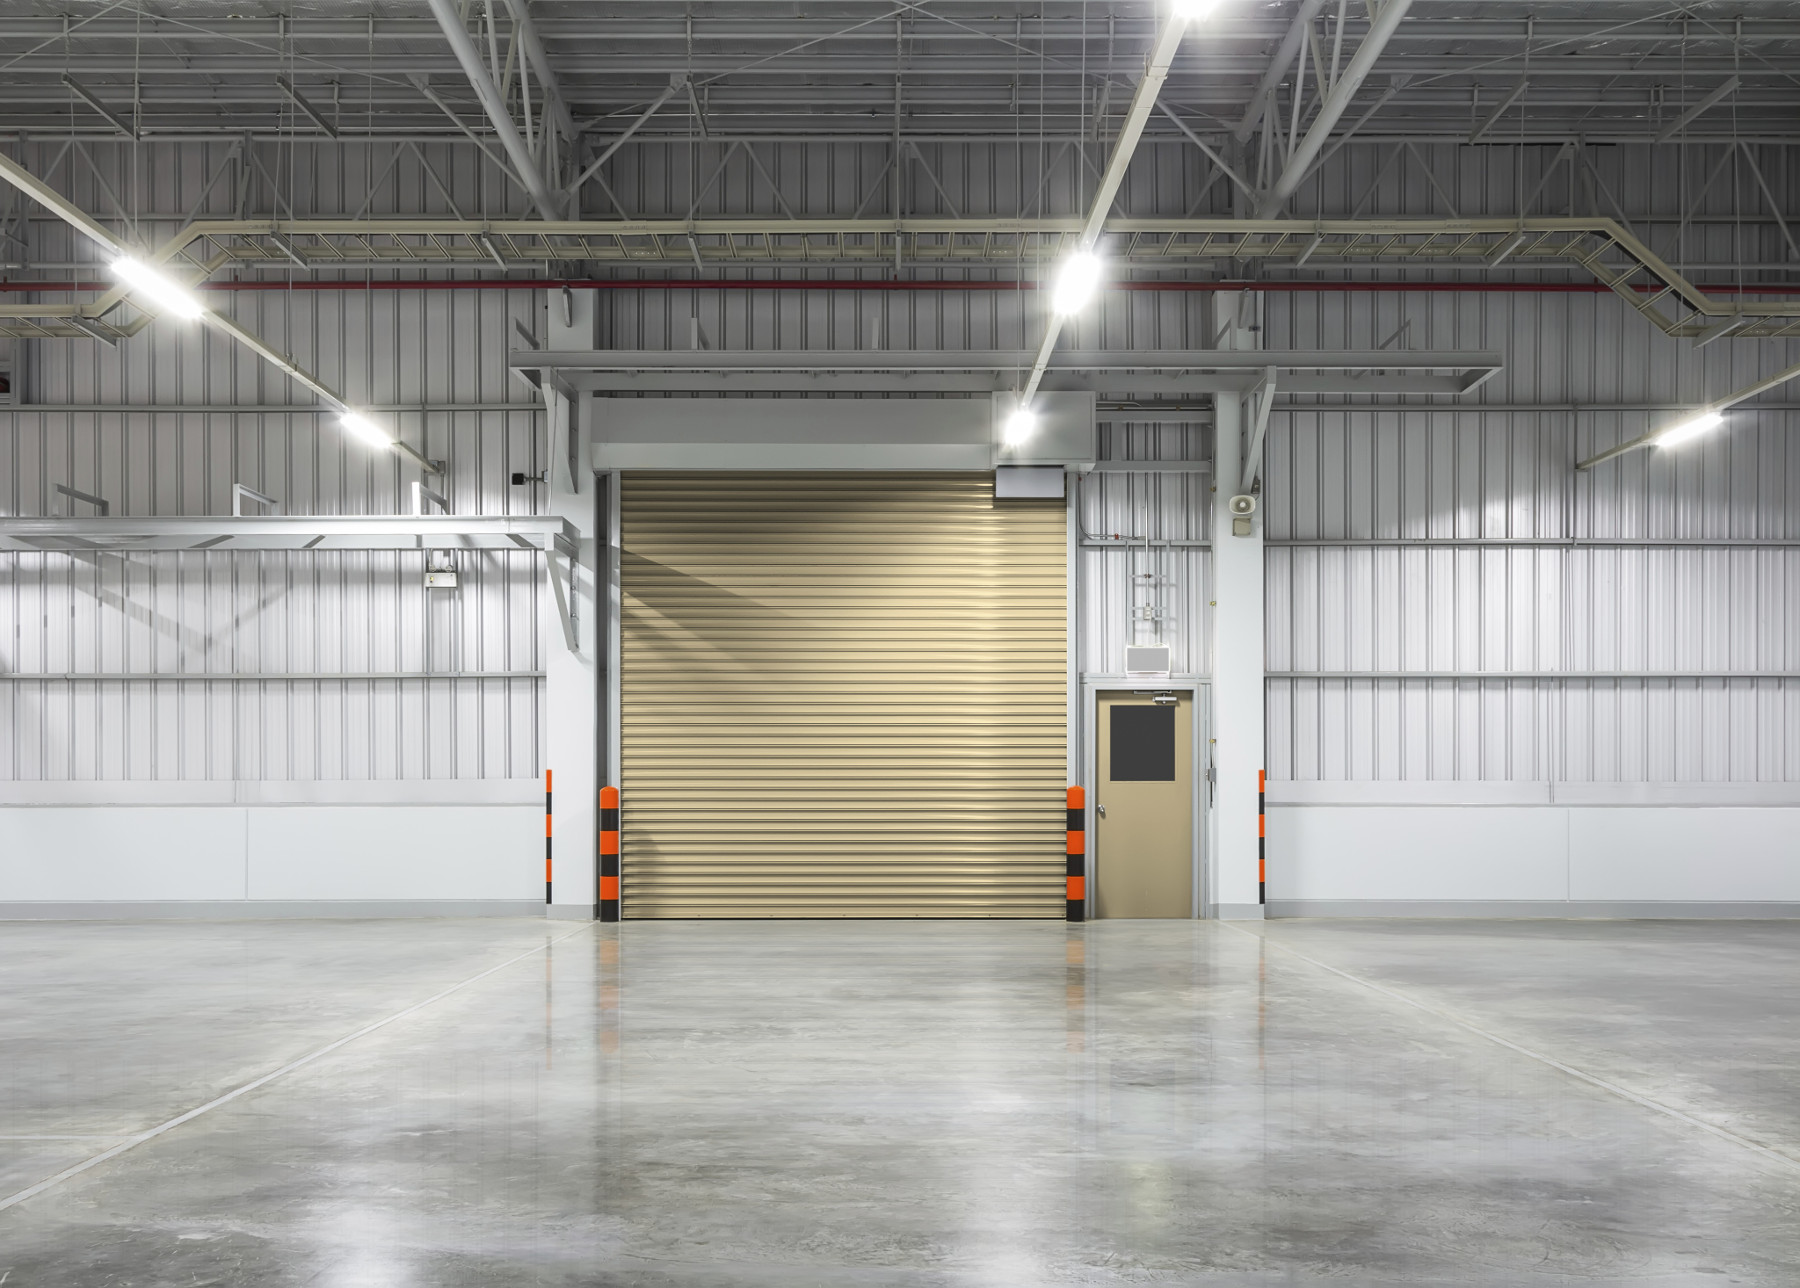 Warehouse-Shutter-Door-521154911 & AAA Door Guys Gallery | Barrie ON | AAA Door Guys Inc.